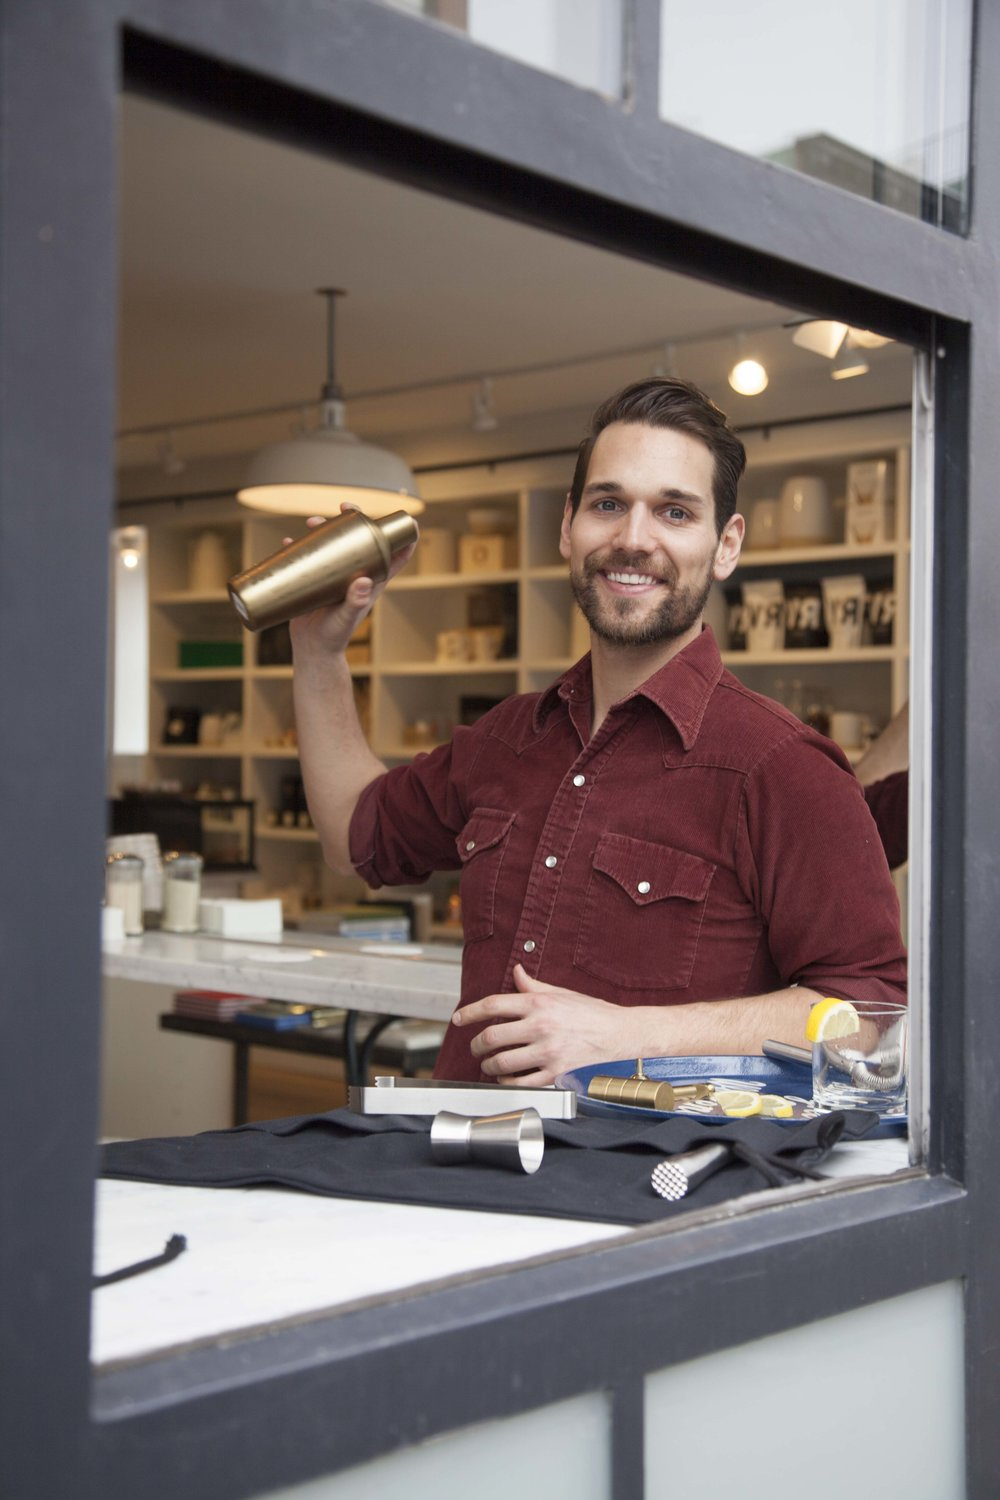 Dan Sorg, director of retail, mixes up a drink using Izola barware in the window of Regular Visitors.